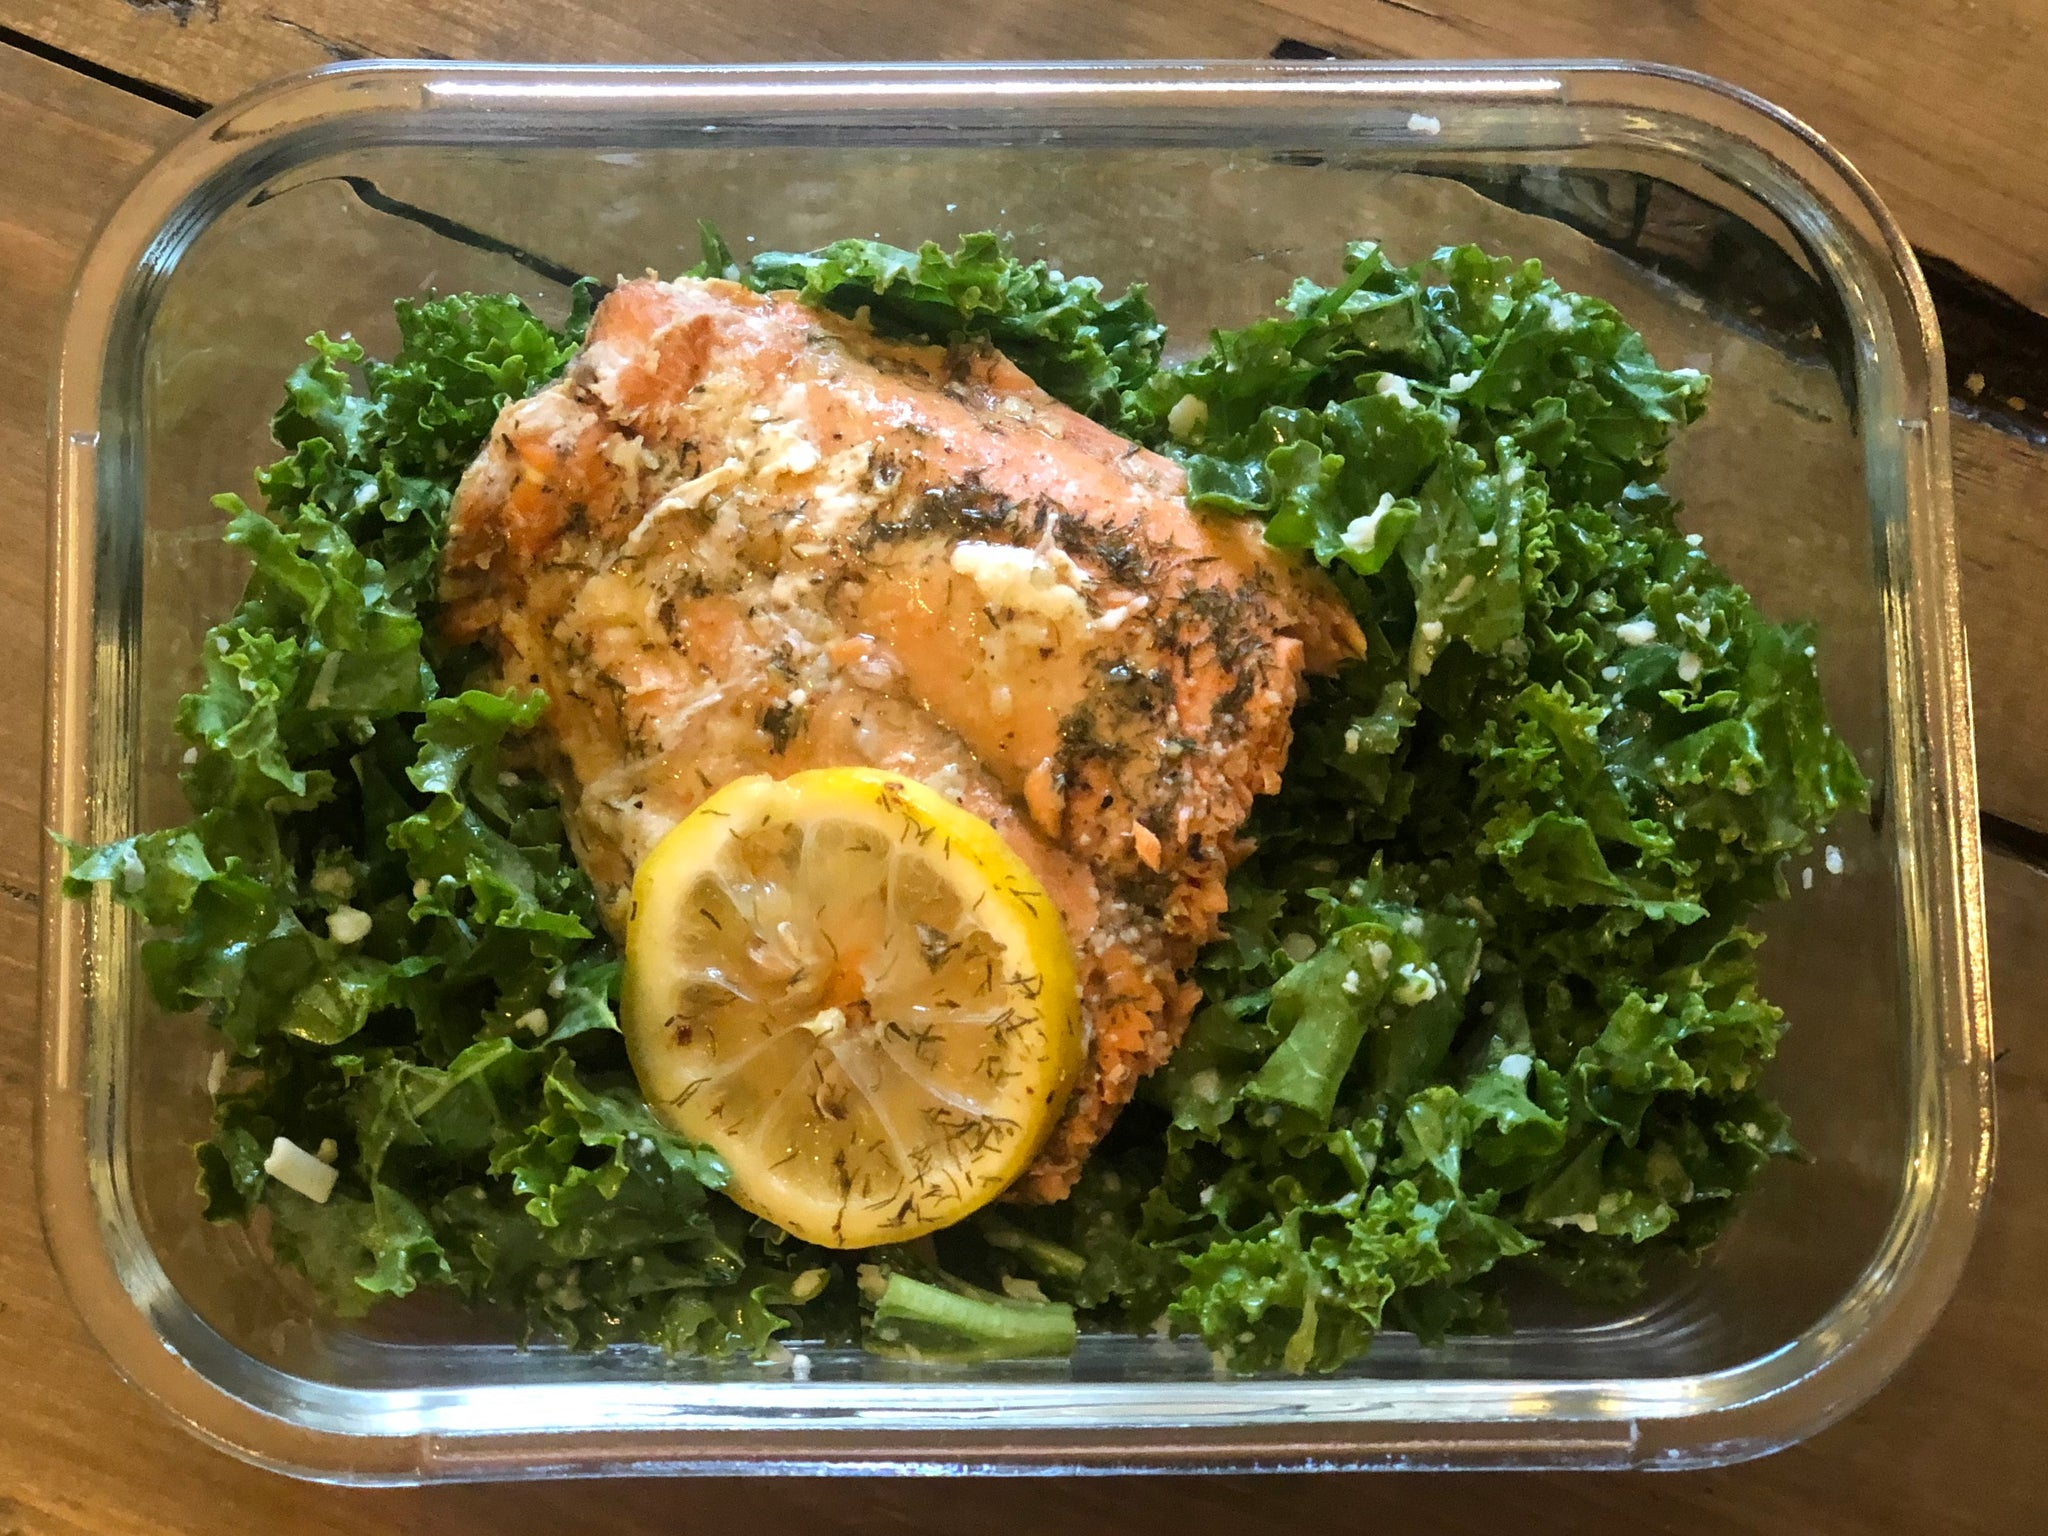 Honey Glazed Garlic Salmon & Lemon Garlic Kale Salad